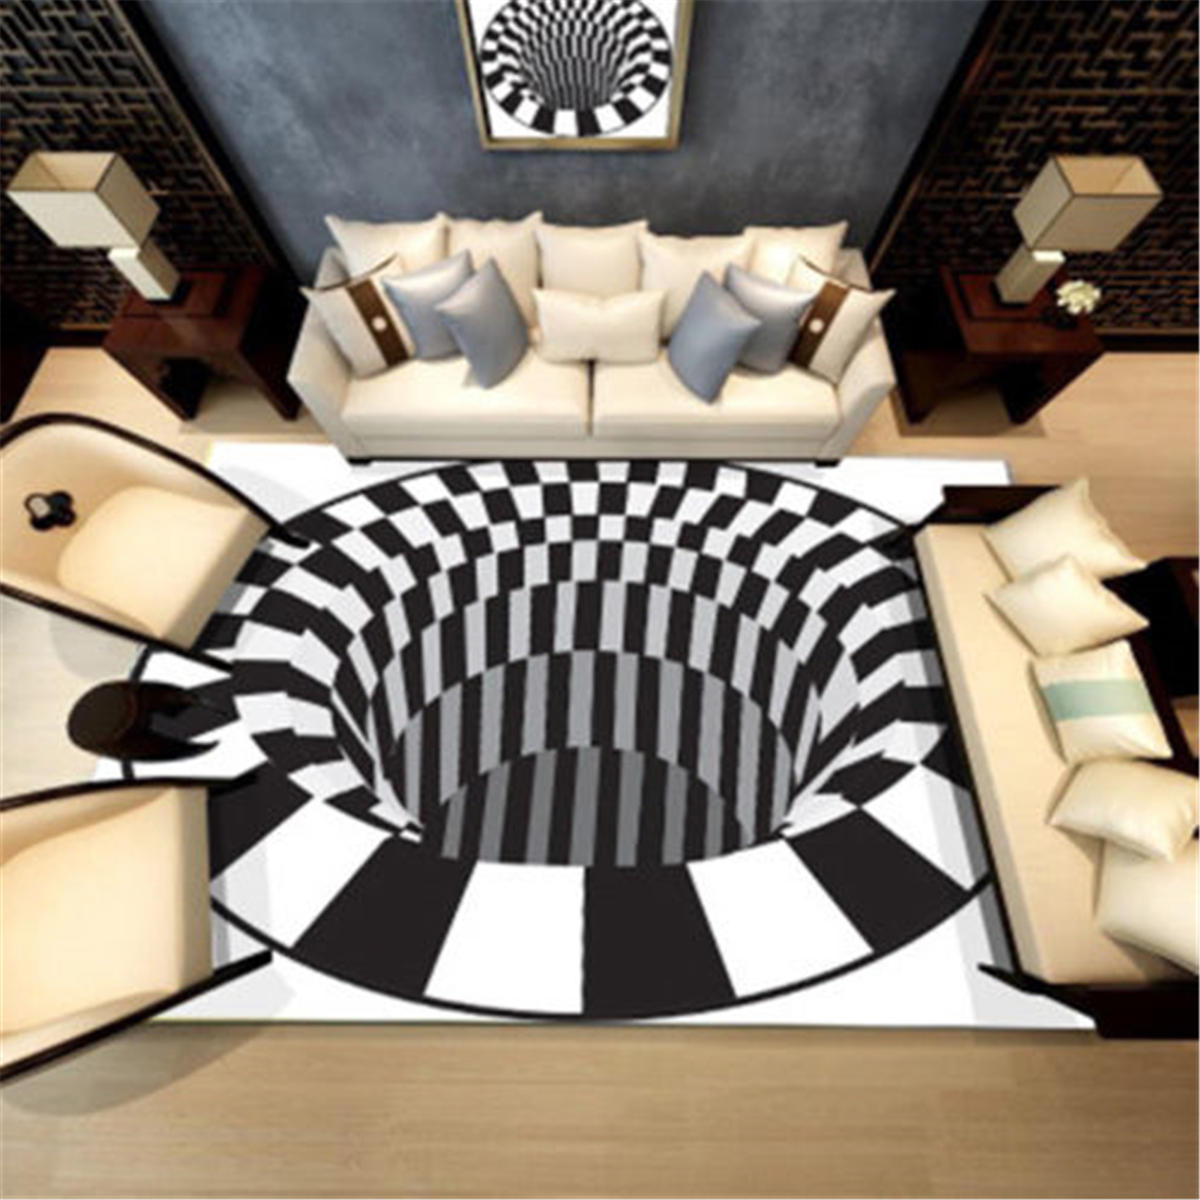 3d Style Rugs Modern Carpet Floor Mat Living Room Non Slip Carpets Home Decorations